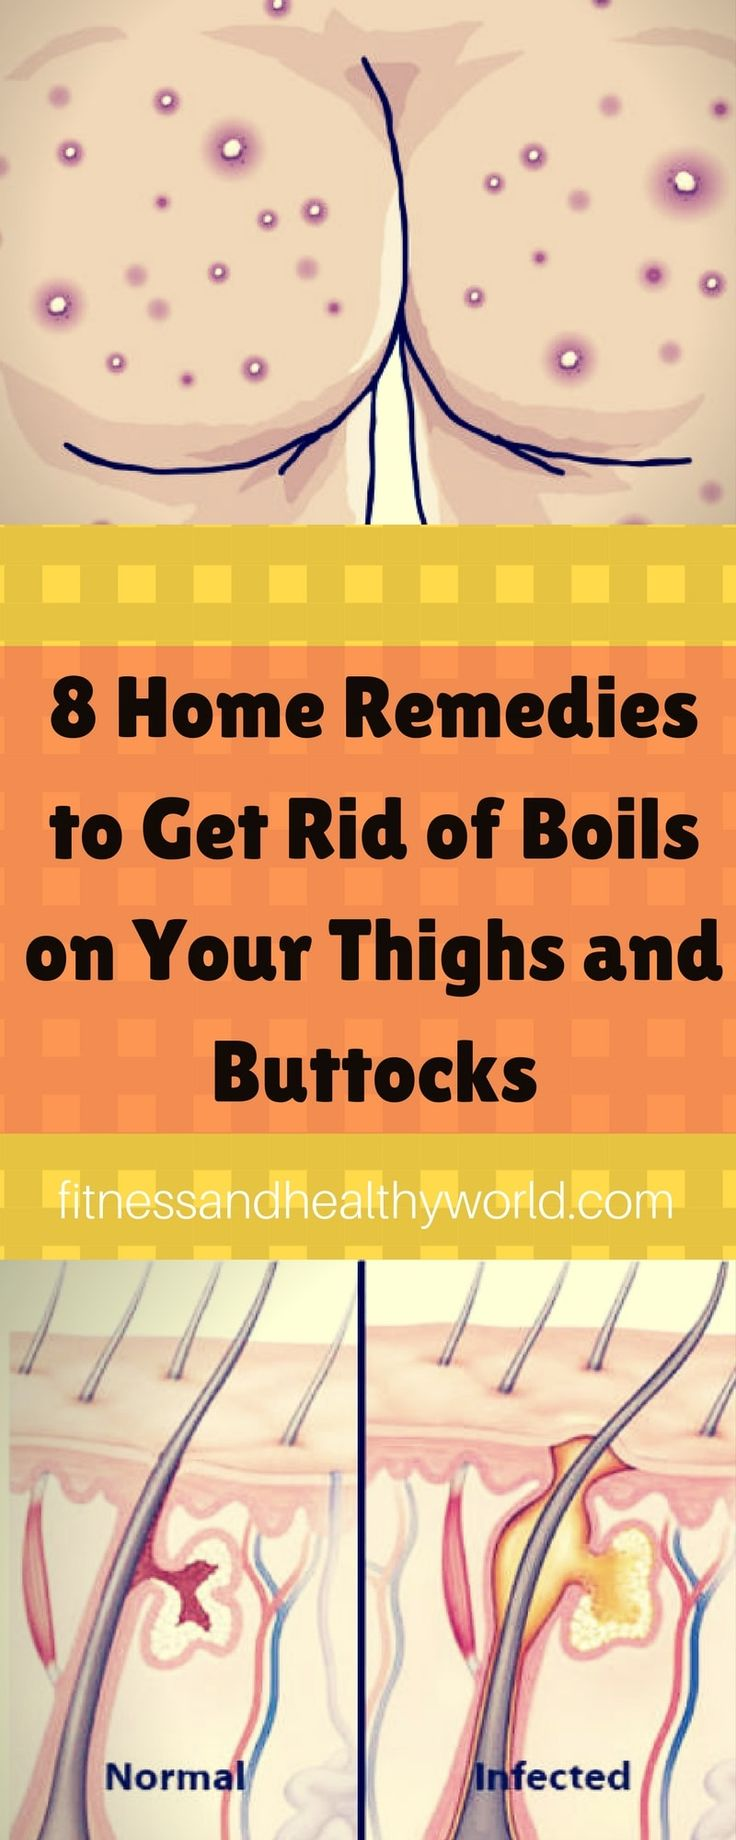 #remedy#boils#thighs#buttocks#beauty#skincare